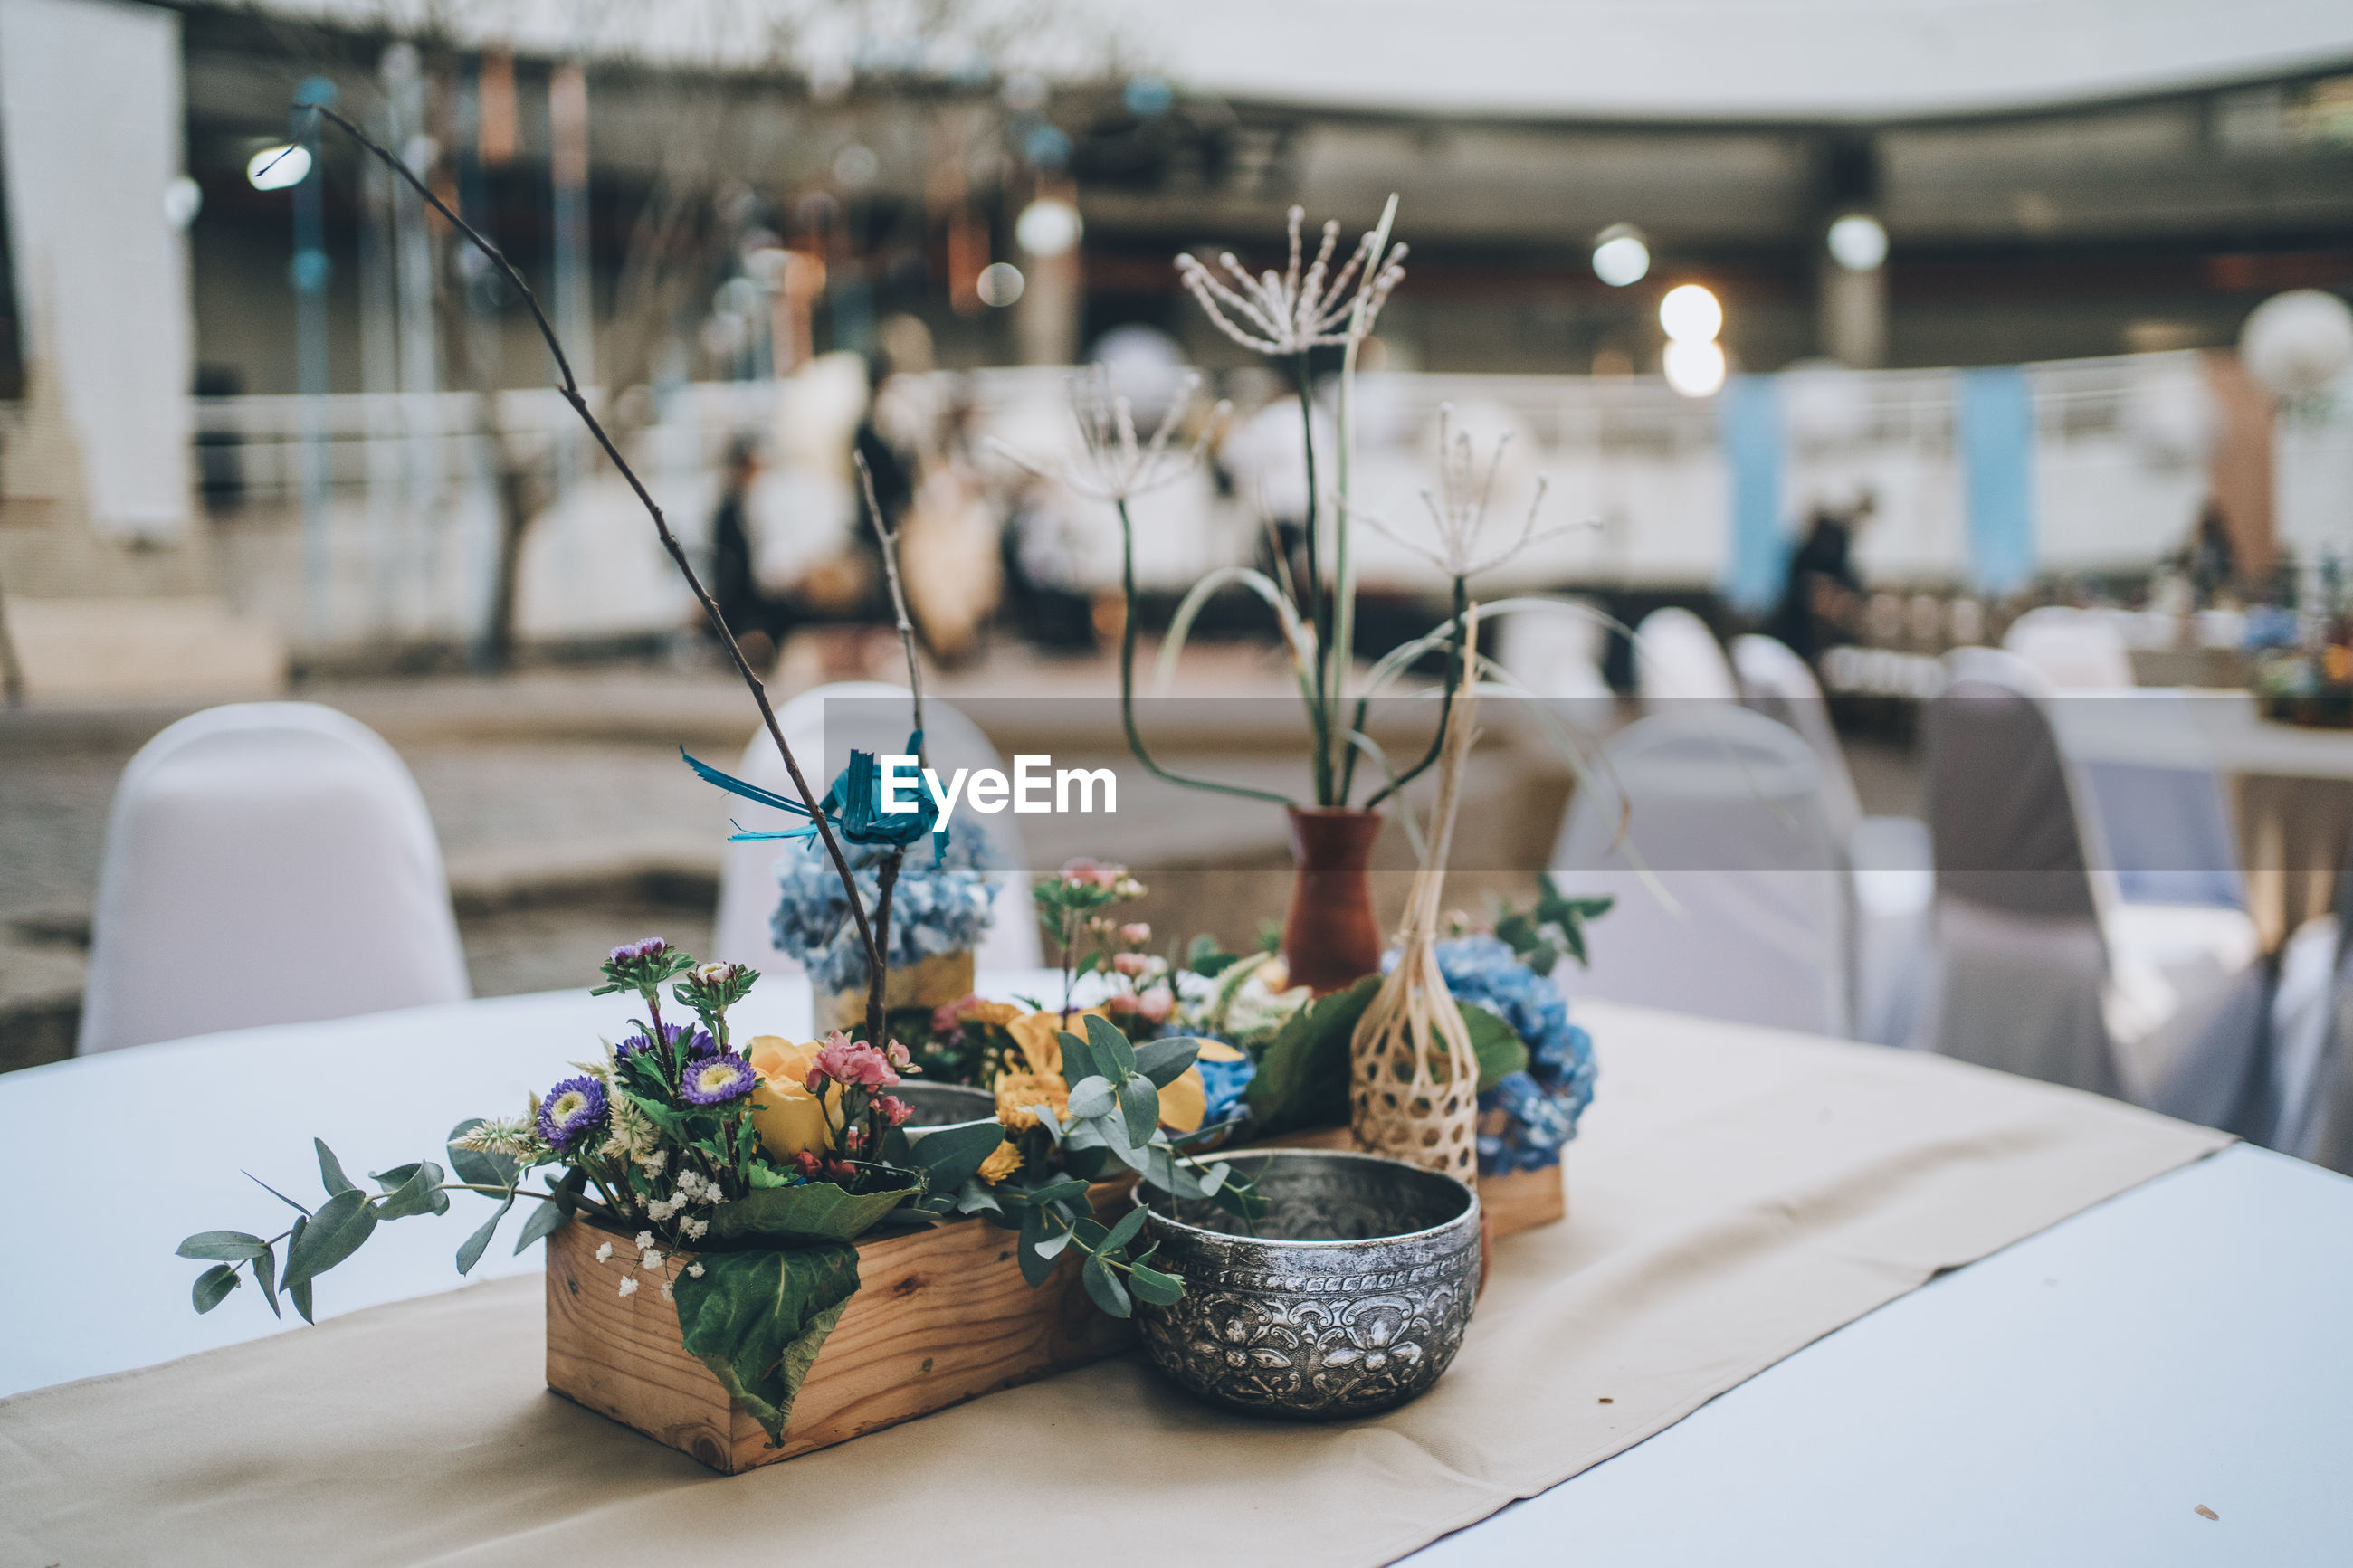 CLOSE-UP OF POTTED PLANTS ON TABLE AGAINST WALL